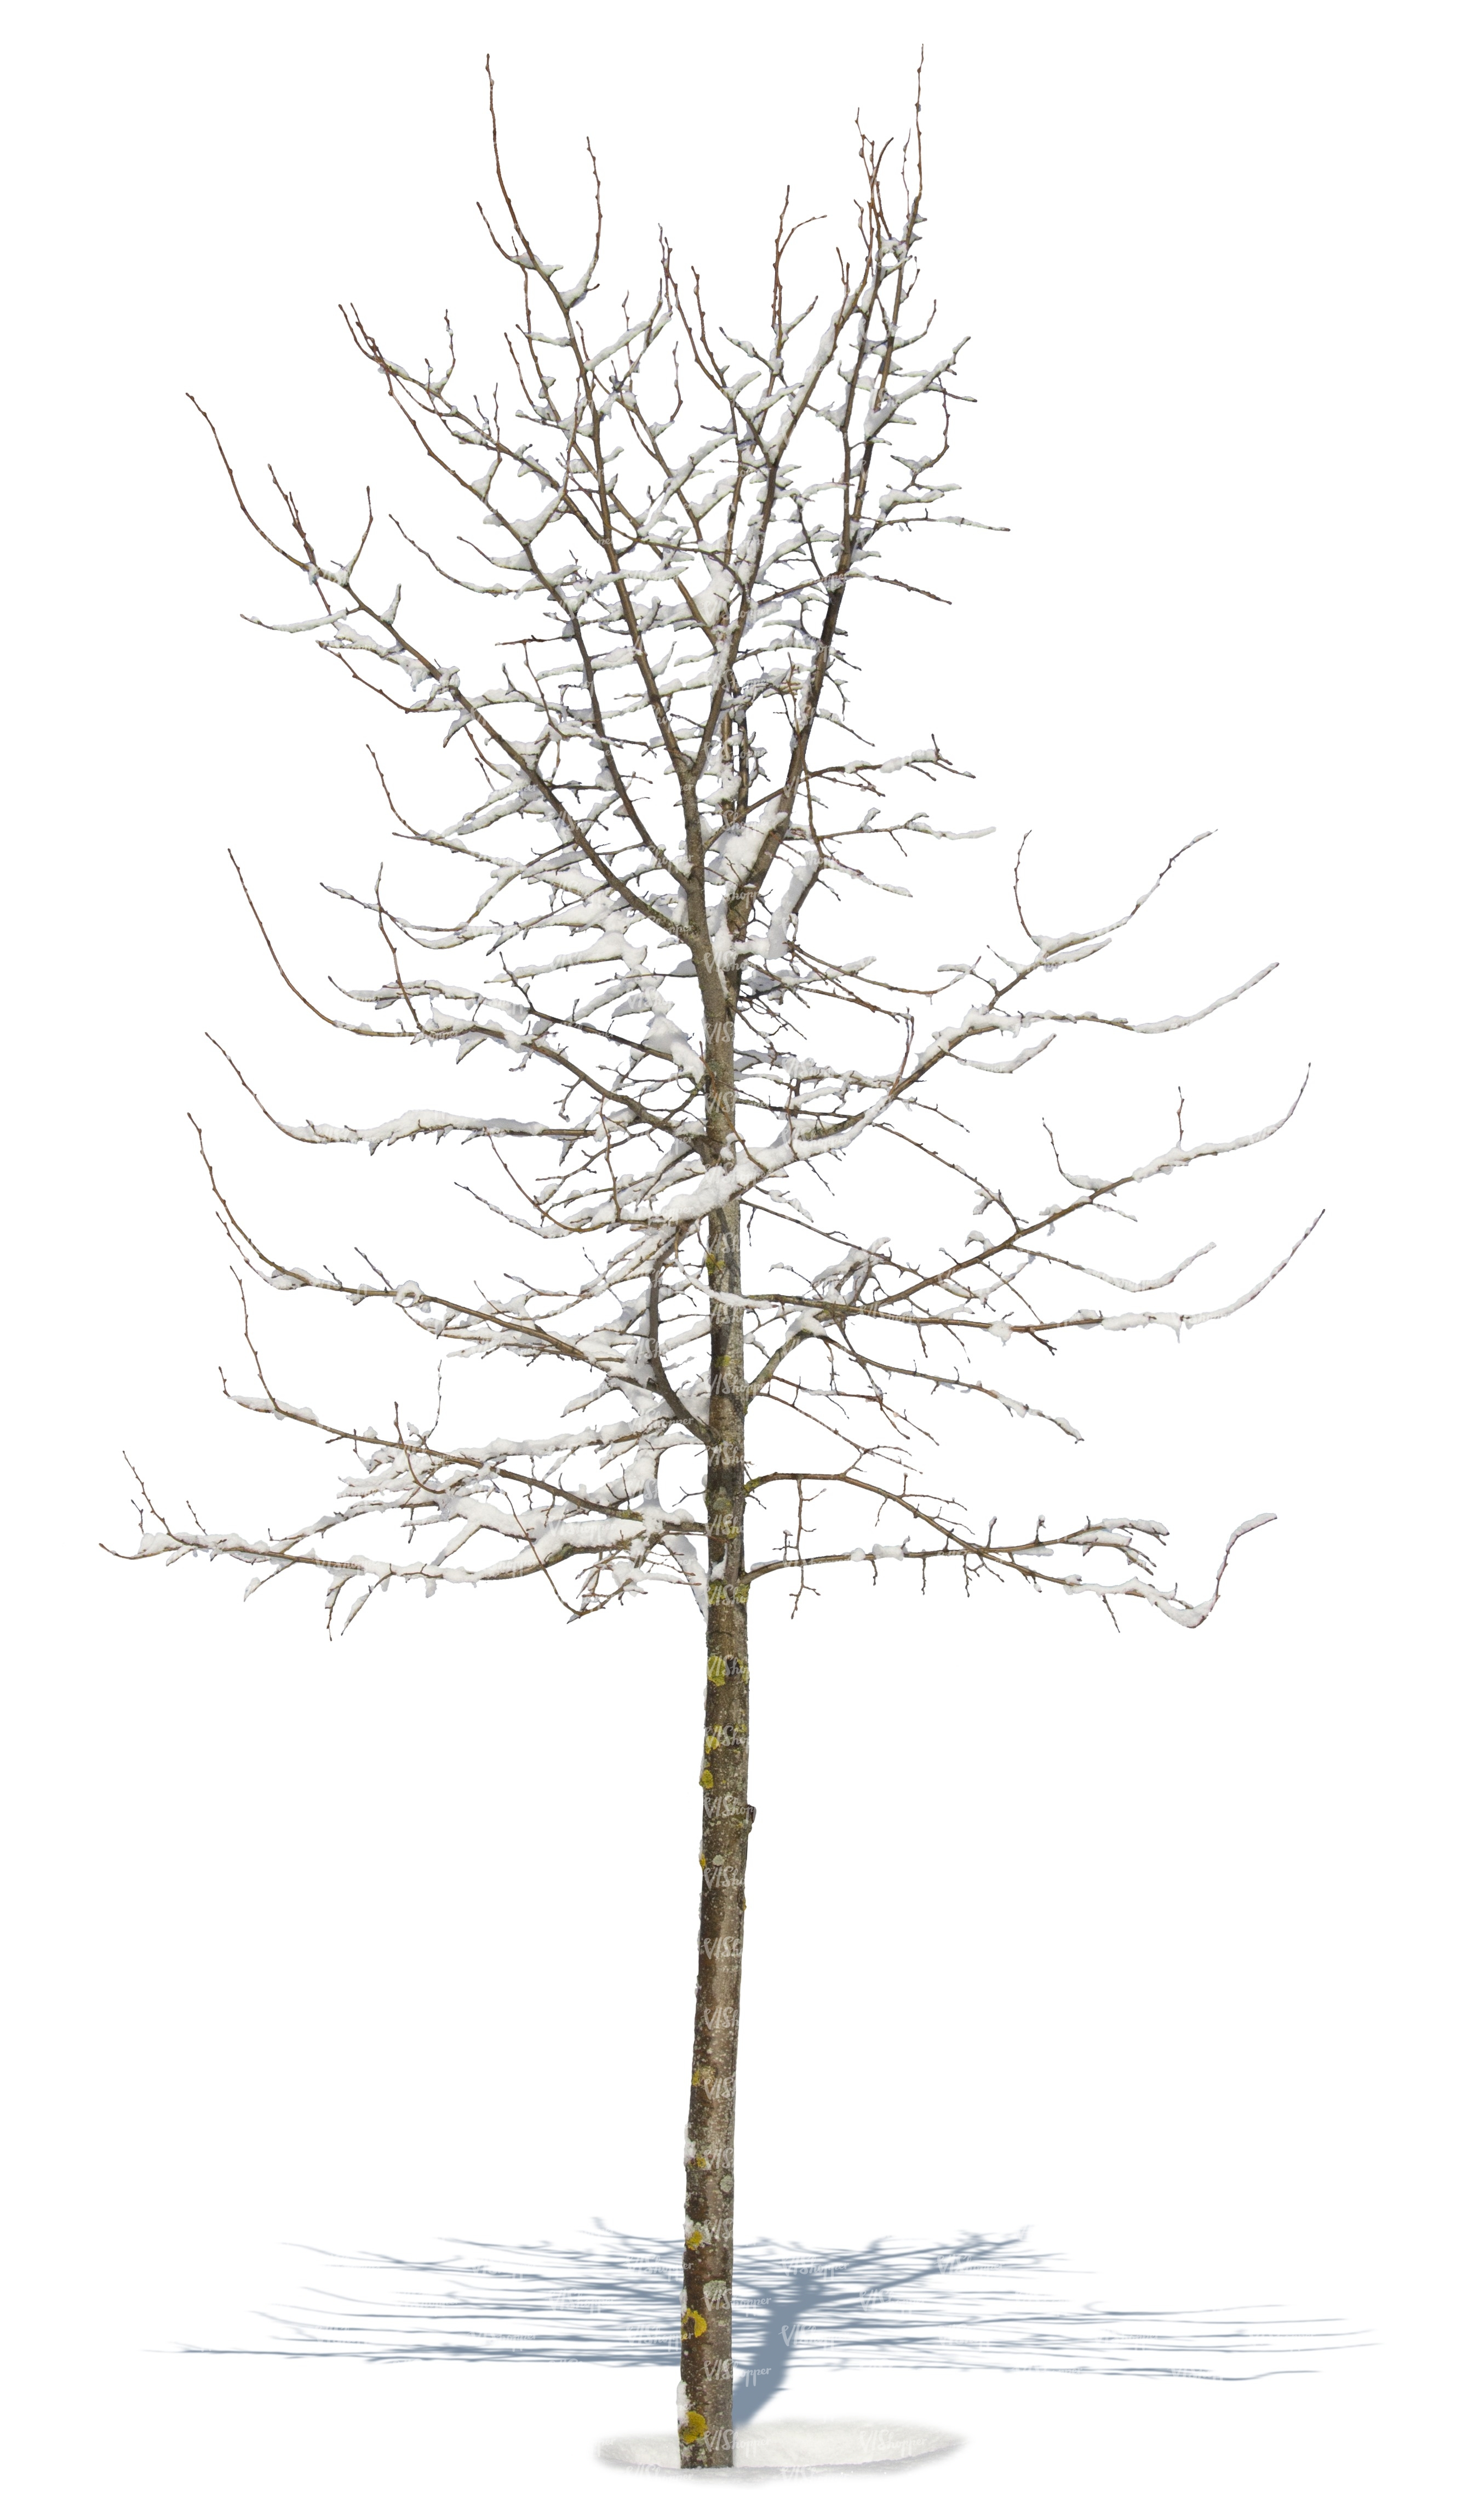 leafless tree covered with snow cut out plants vishopper